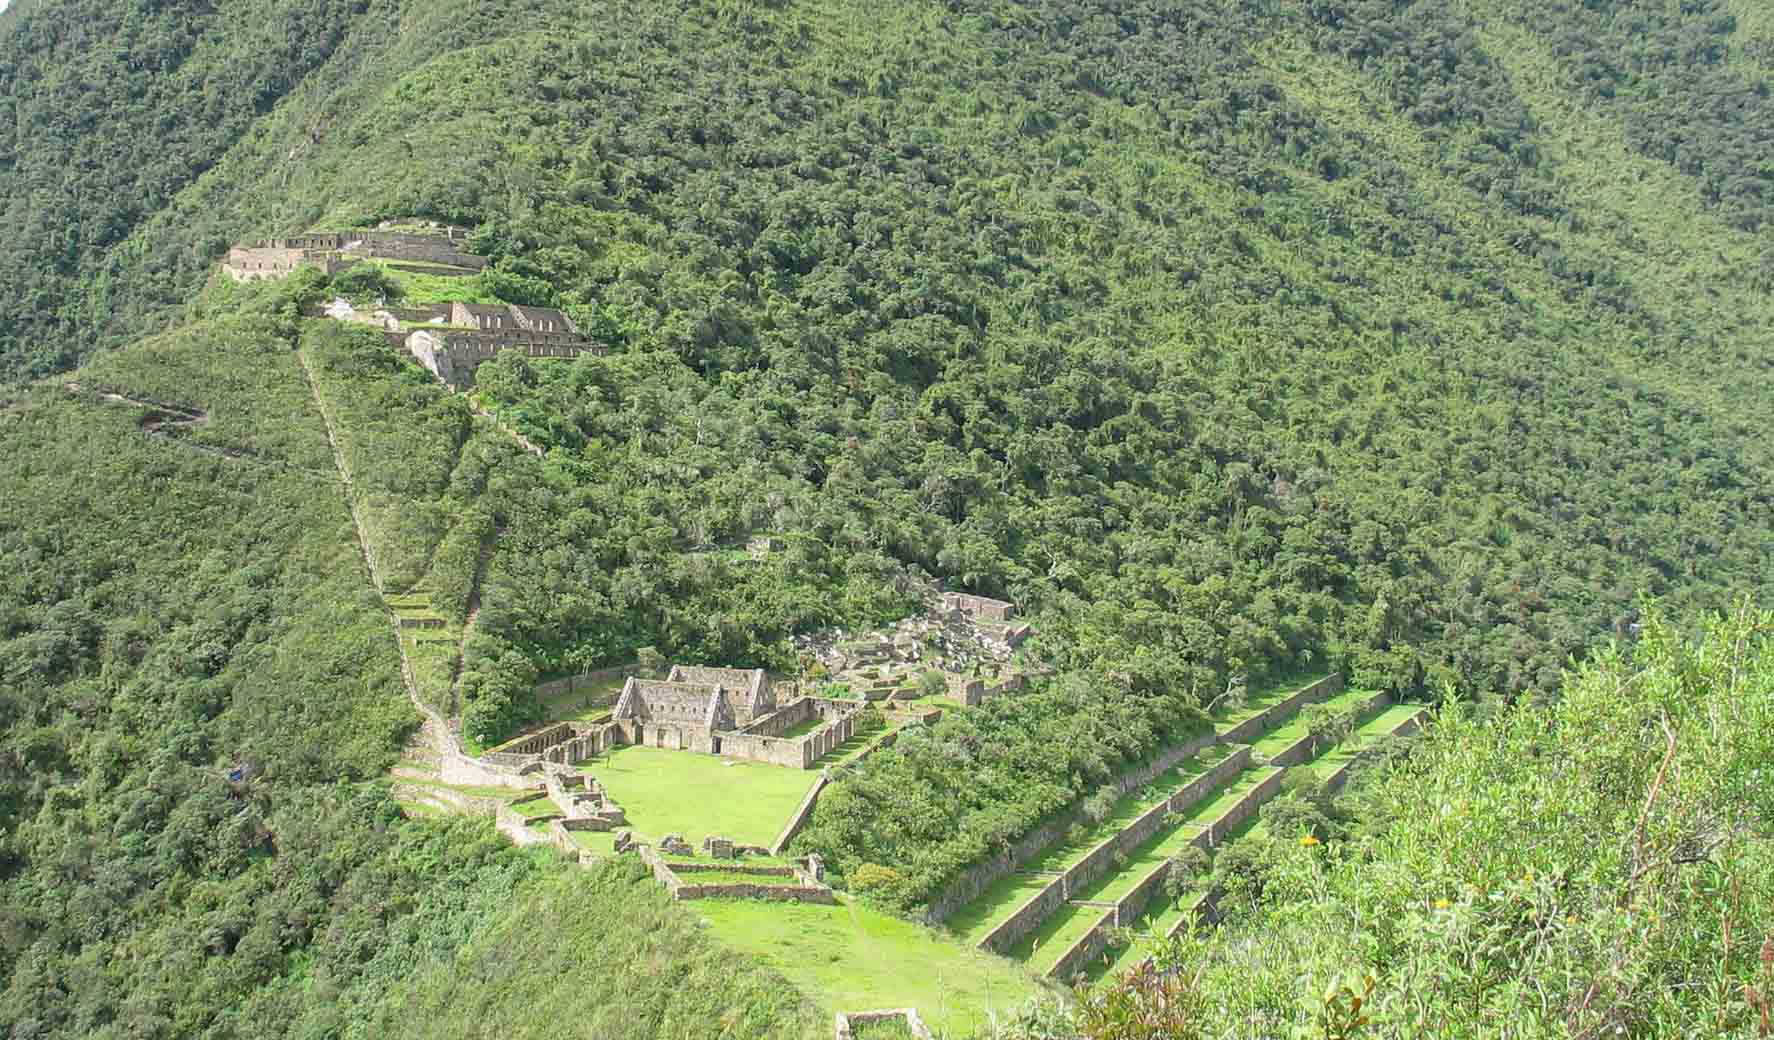 Choquequirao ruins from afar. Several levels of stone buildings with surrounding lush greenery on a mountainside.